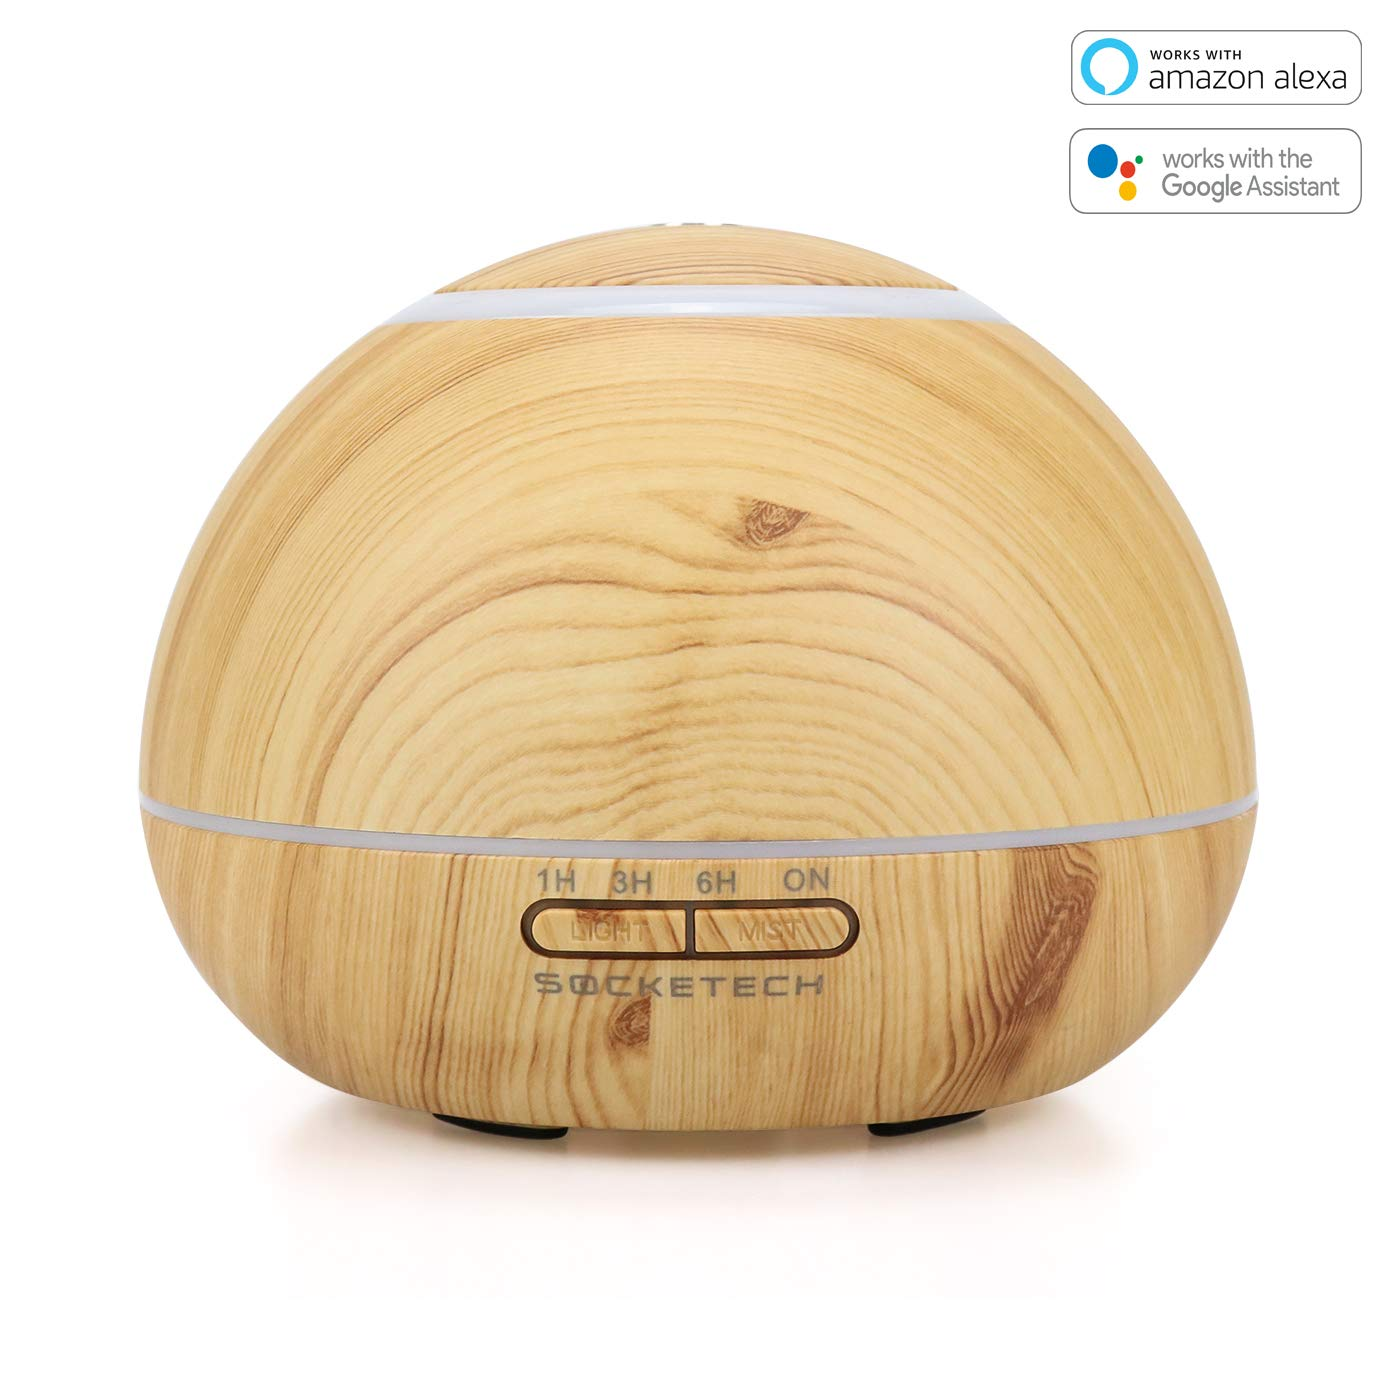 SOCKETECH ST17K 300ml Smart Wireless Essential Oil Aromatherapy Diffuser - Works with Alexa&Google Home,APP and Voice Control - Light Wood Grain